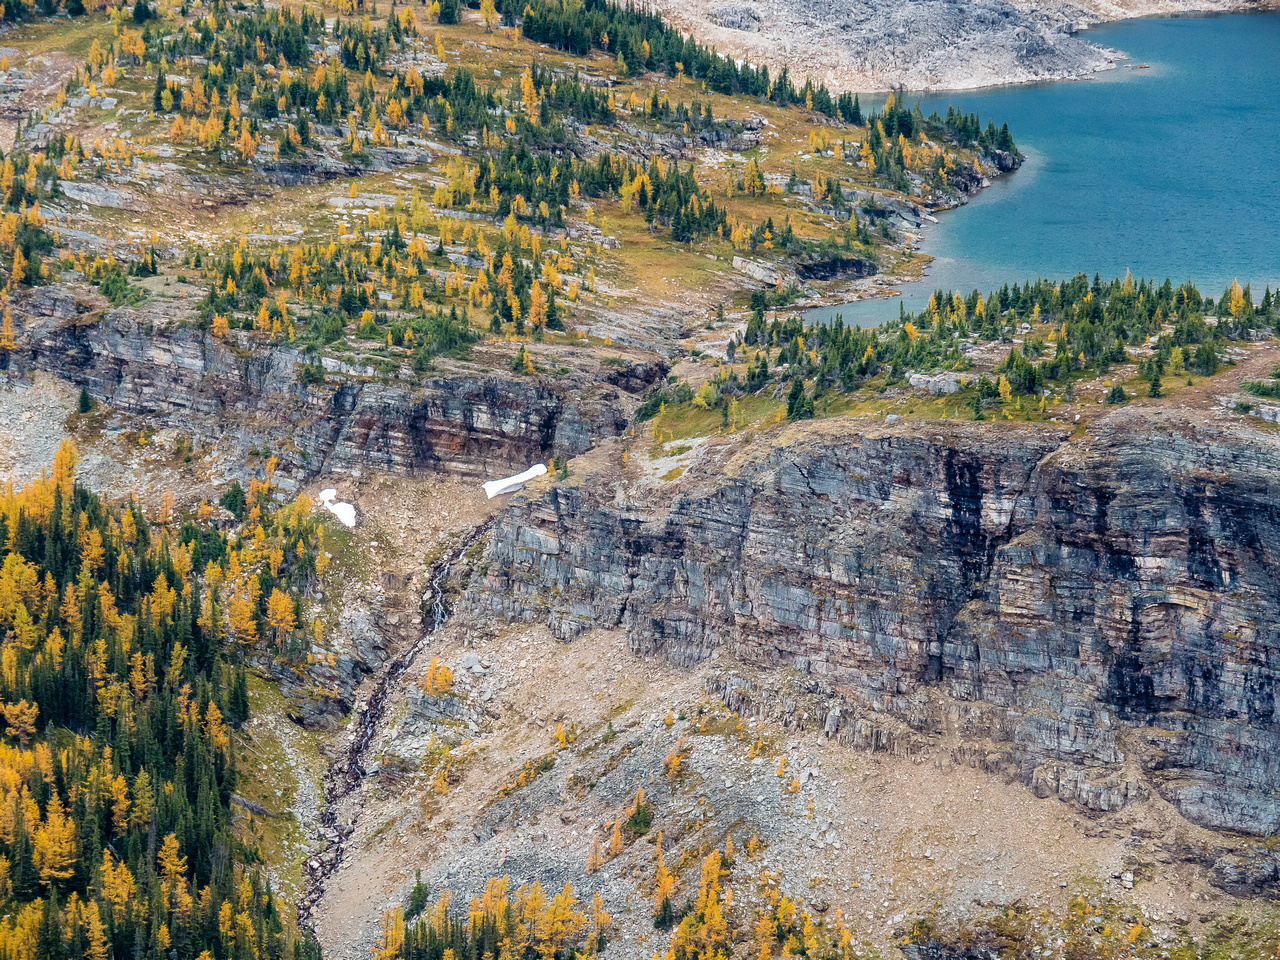 Waterfall and larches around the Mummy Lake drainage.